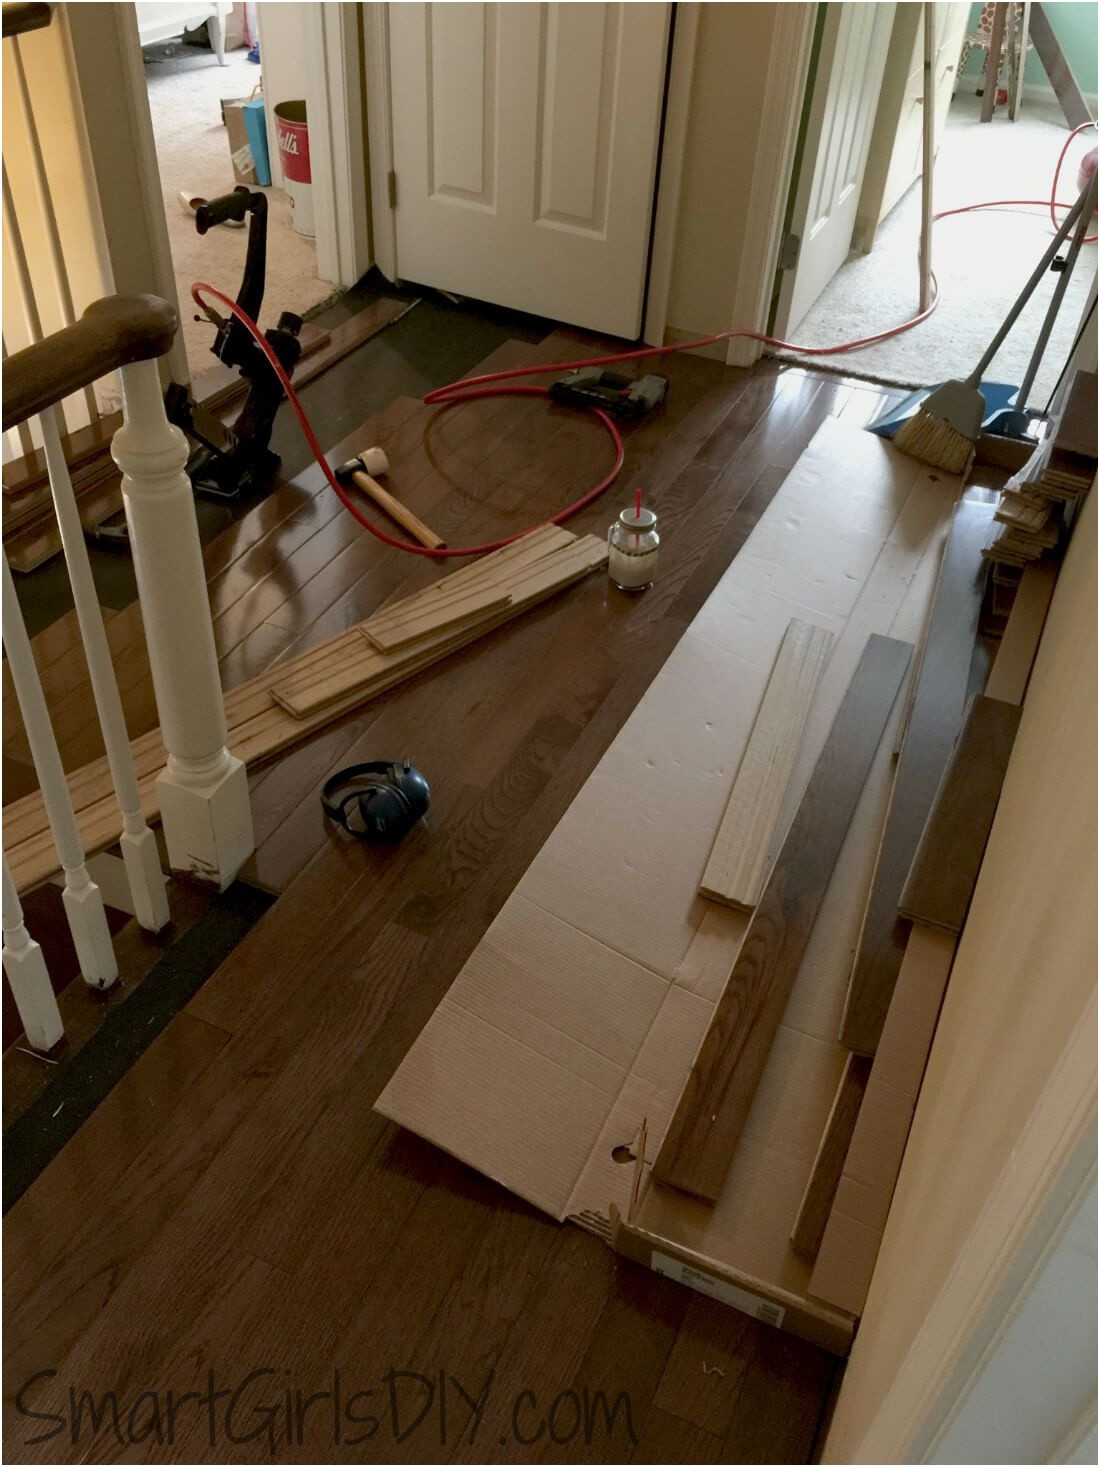 Does Lowes Install Hardwood Floors Of tongue and Groove Flooring Lowes Flooring Design for tongue and Groove Flooring Lowes Images Upstairs Hallway 1 Installing Hardwood Floors Of tongue and Groove